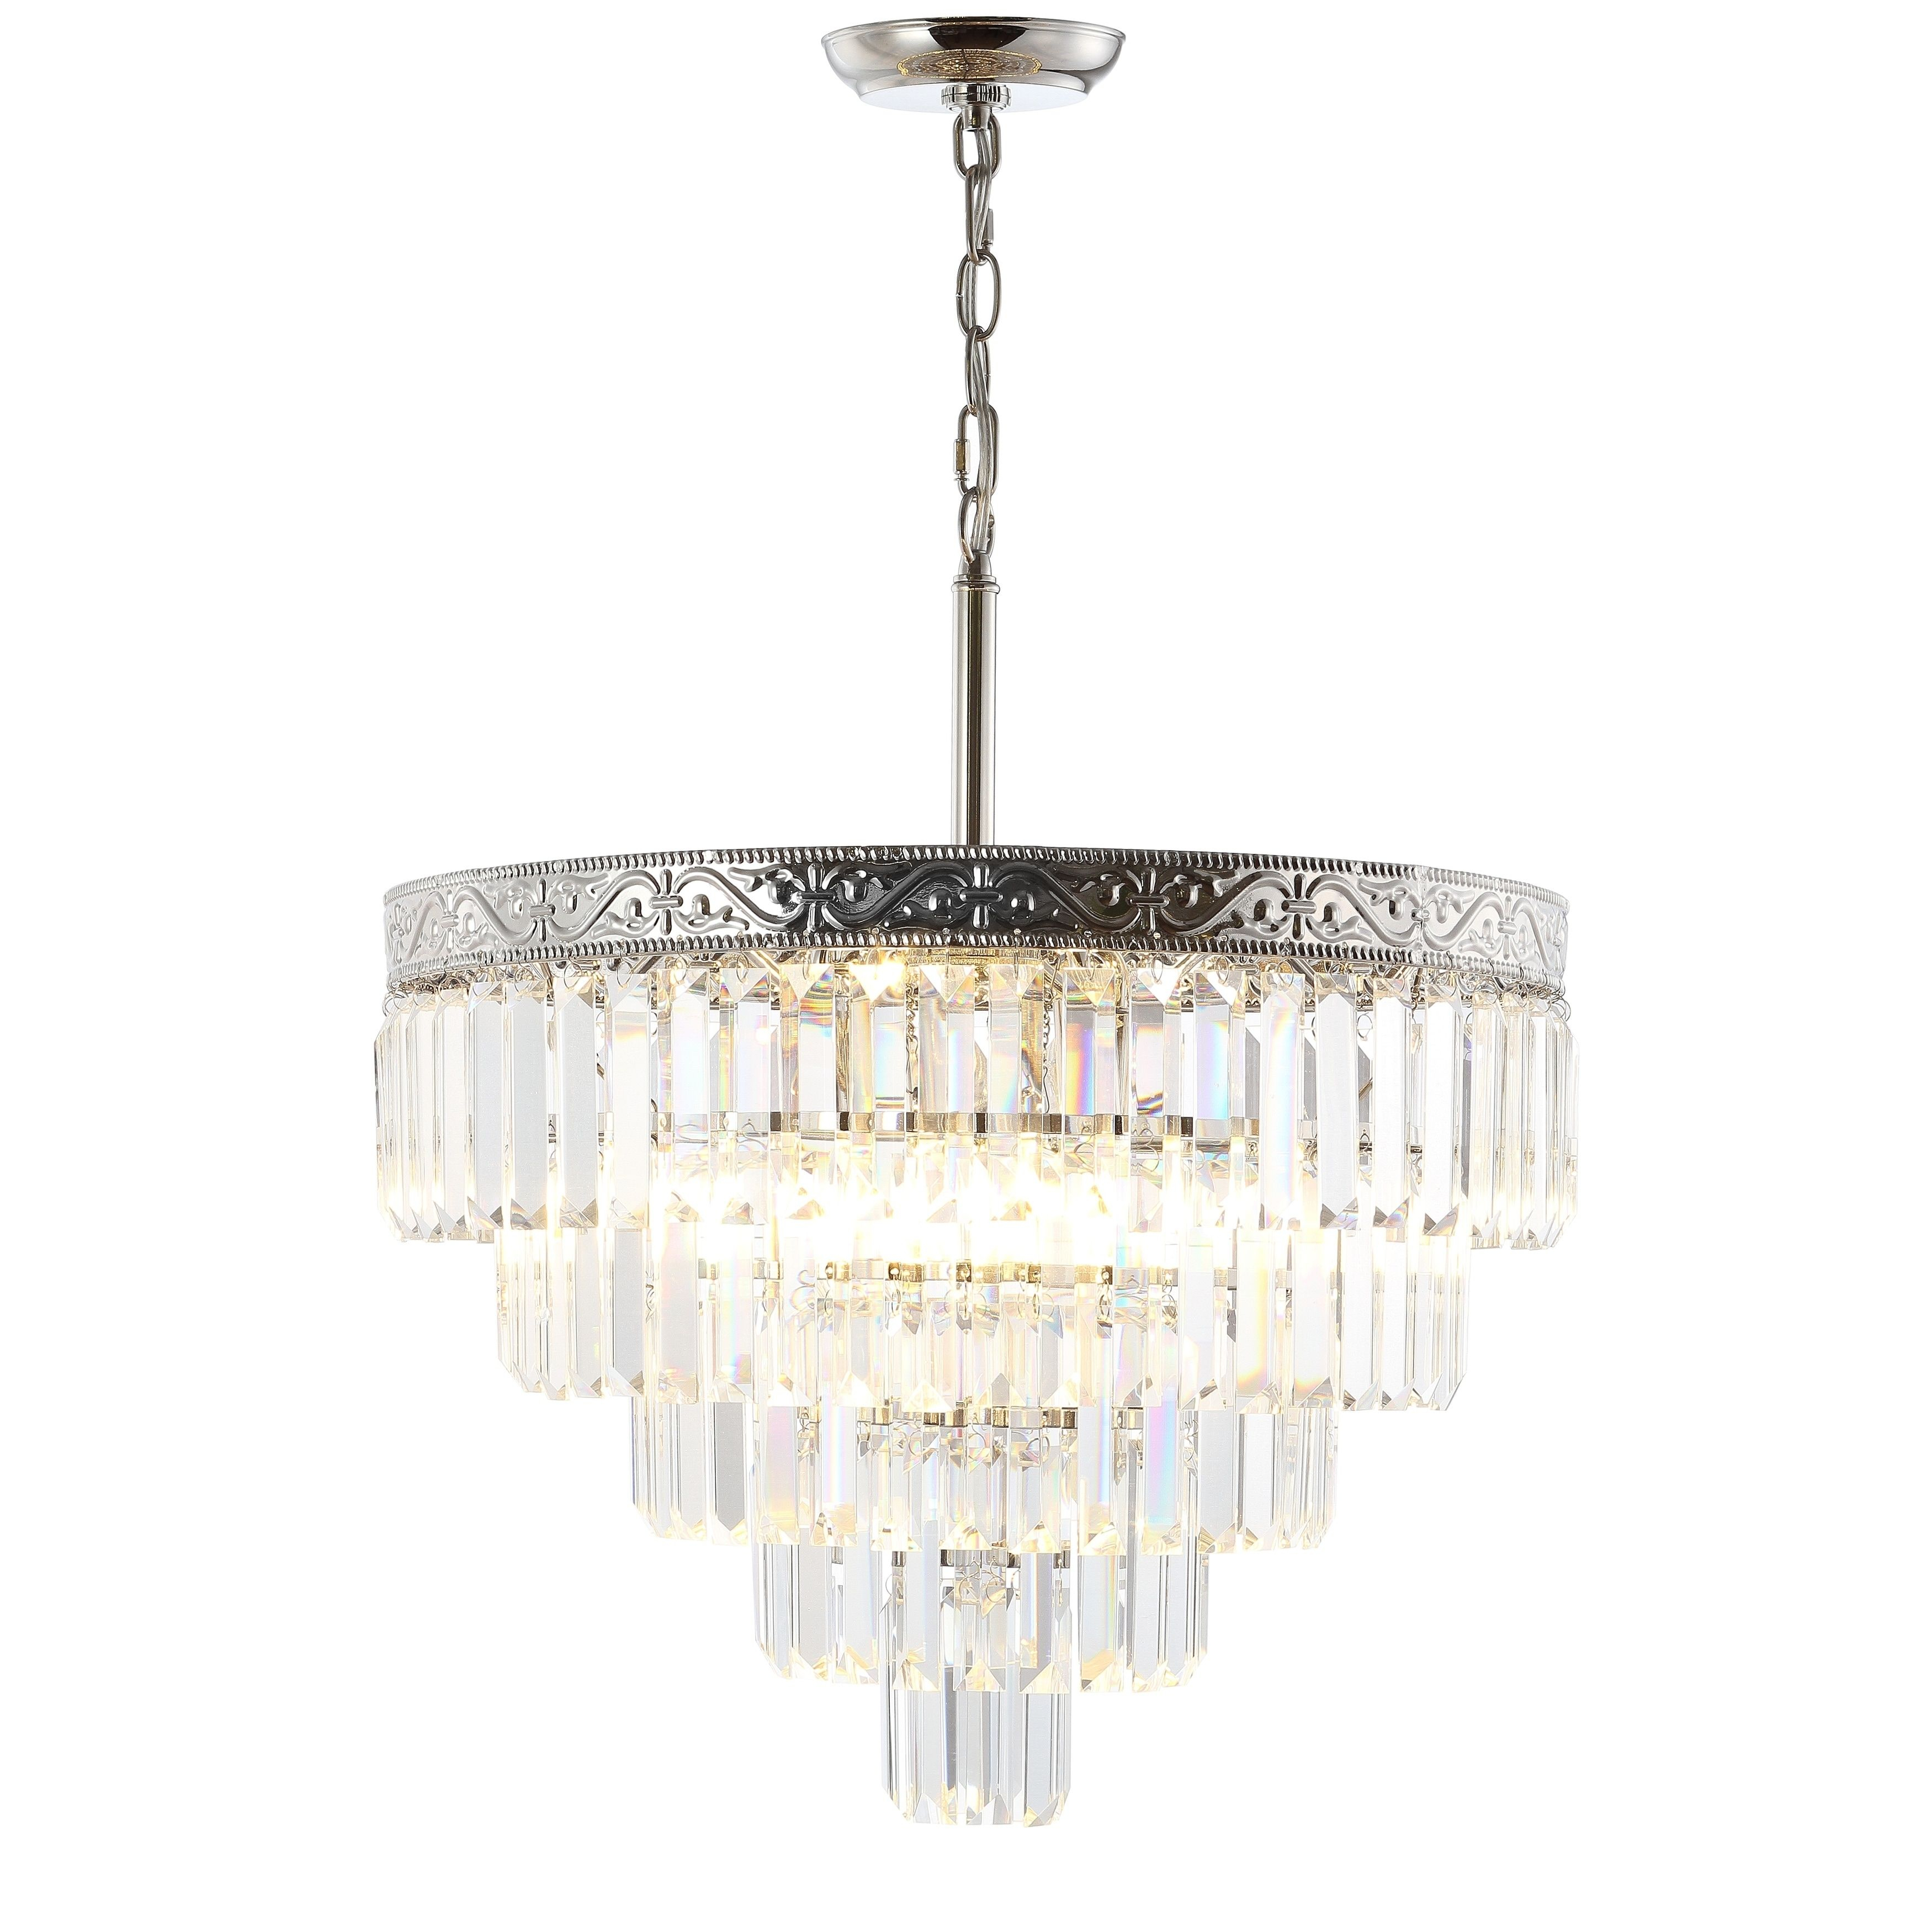 Jonathan Y Wyatt 20 4 Light Crystal Led Chandelier, Polished With Bramers 6 Light Novelty Chandeliers (View 24 of 30)